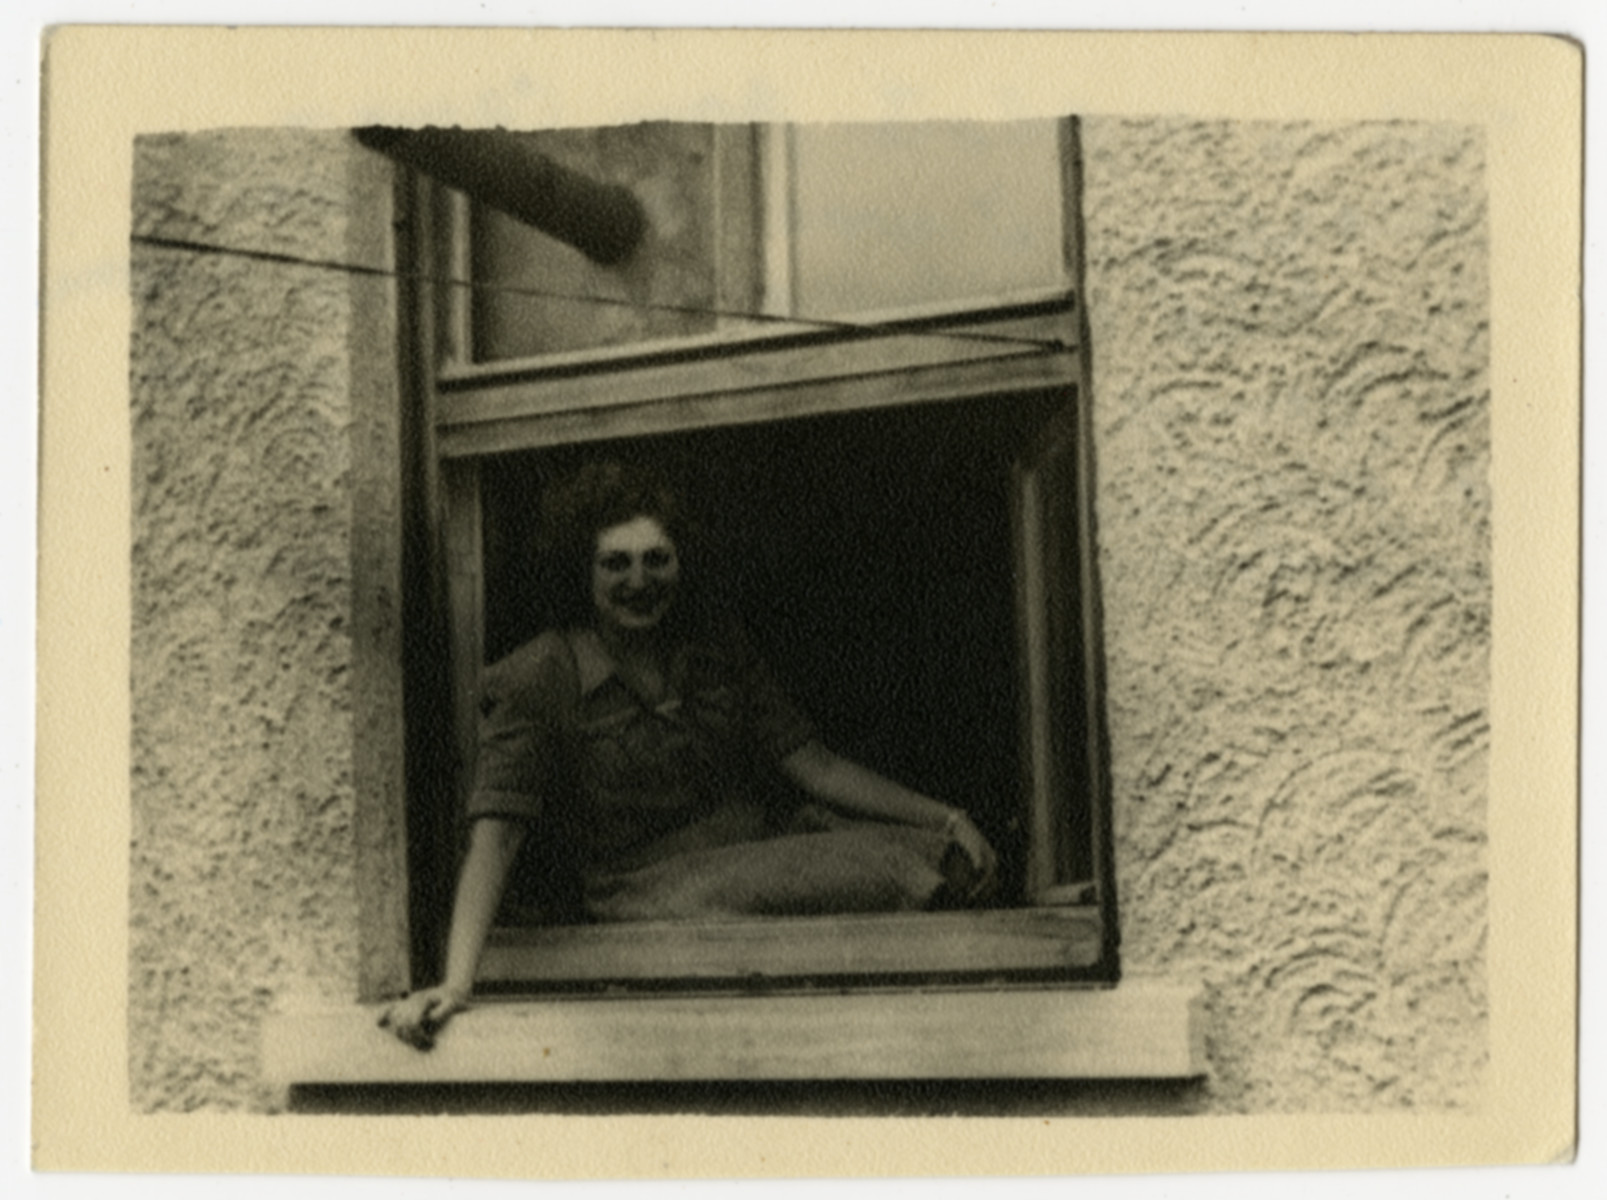 Gizelle Herskovits sits by the window of her barrack at the Feldafing displaced persons camp.